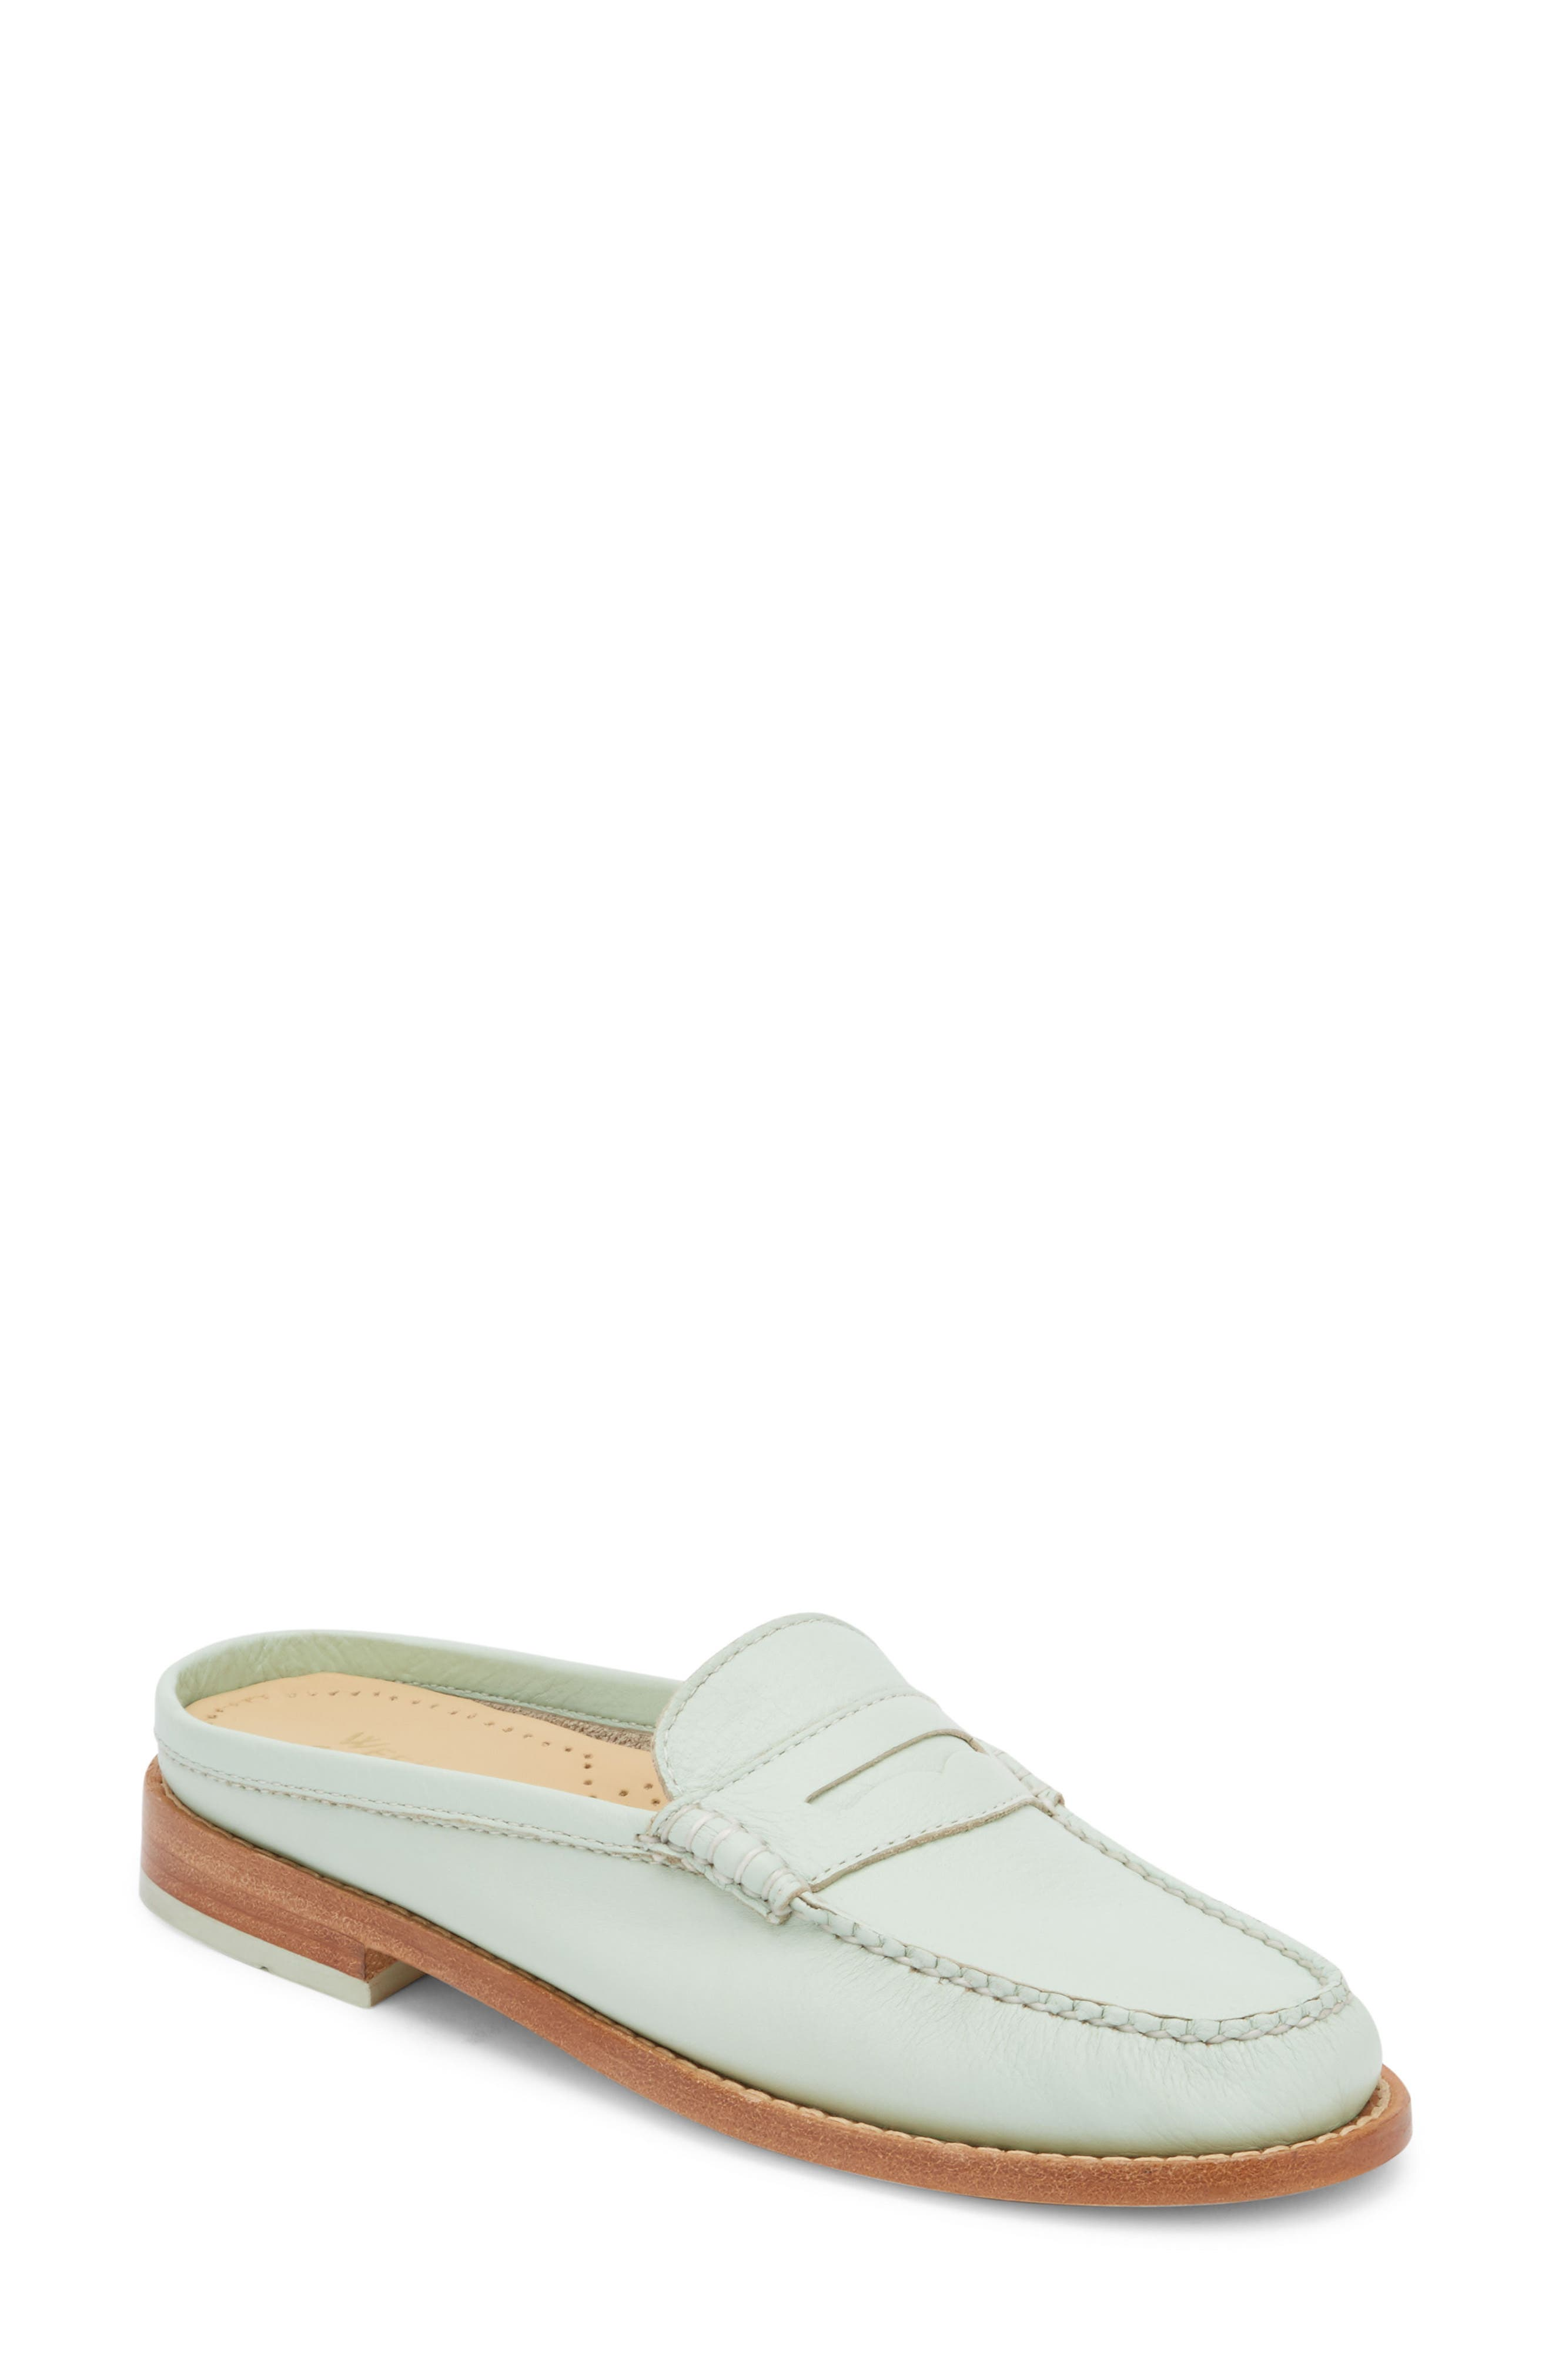 Wynn Loafer Mule,                             Main thumbnail 5, color,